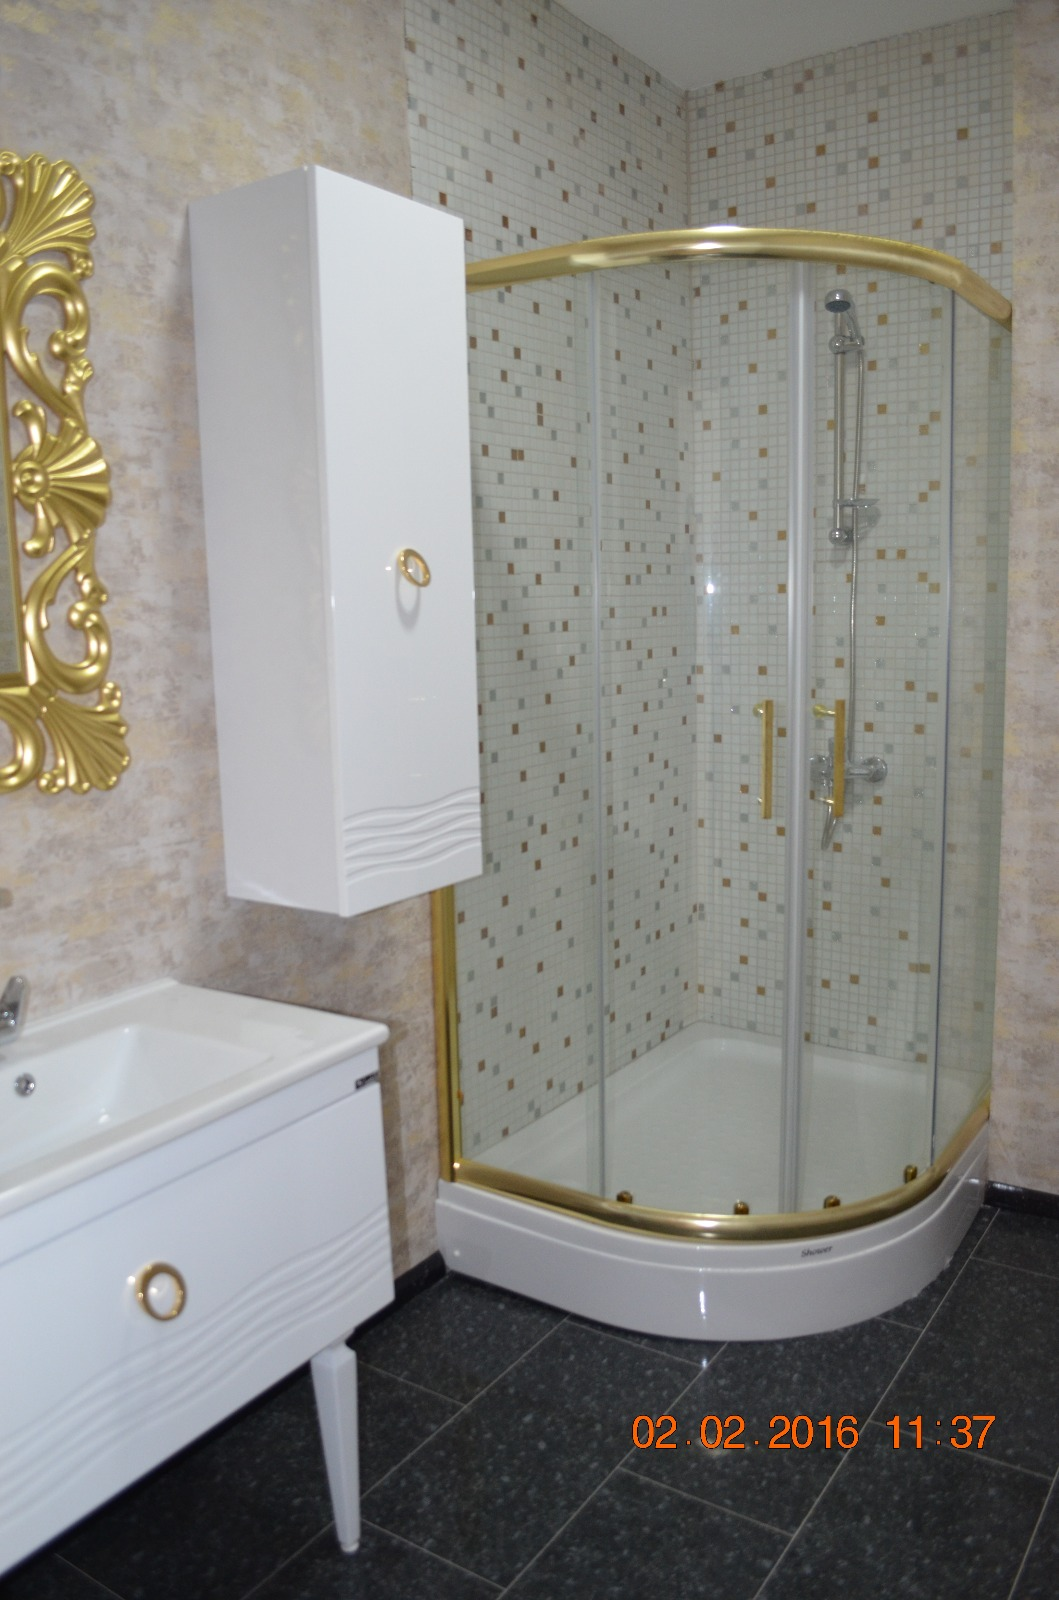 Residence de Luxe a Vendre a Istanbul (8)